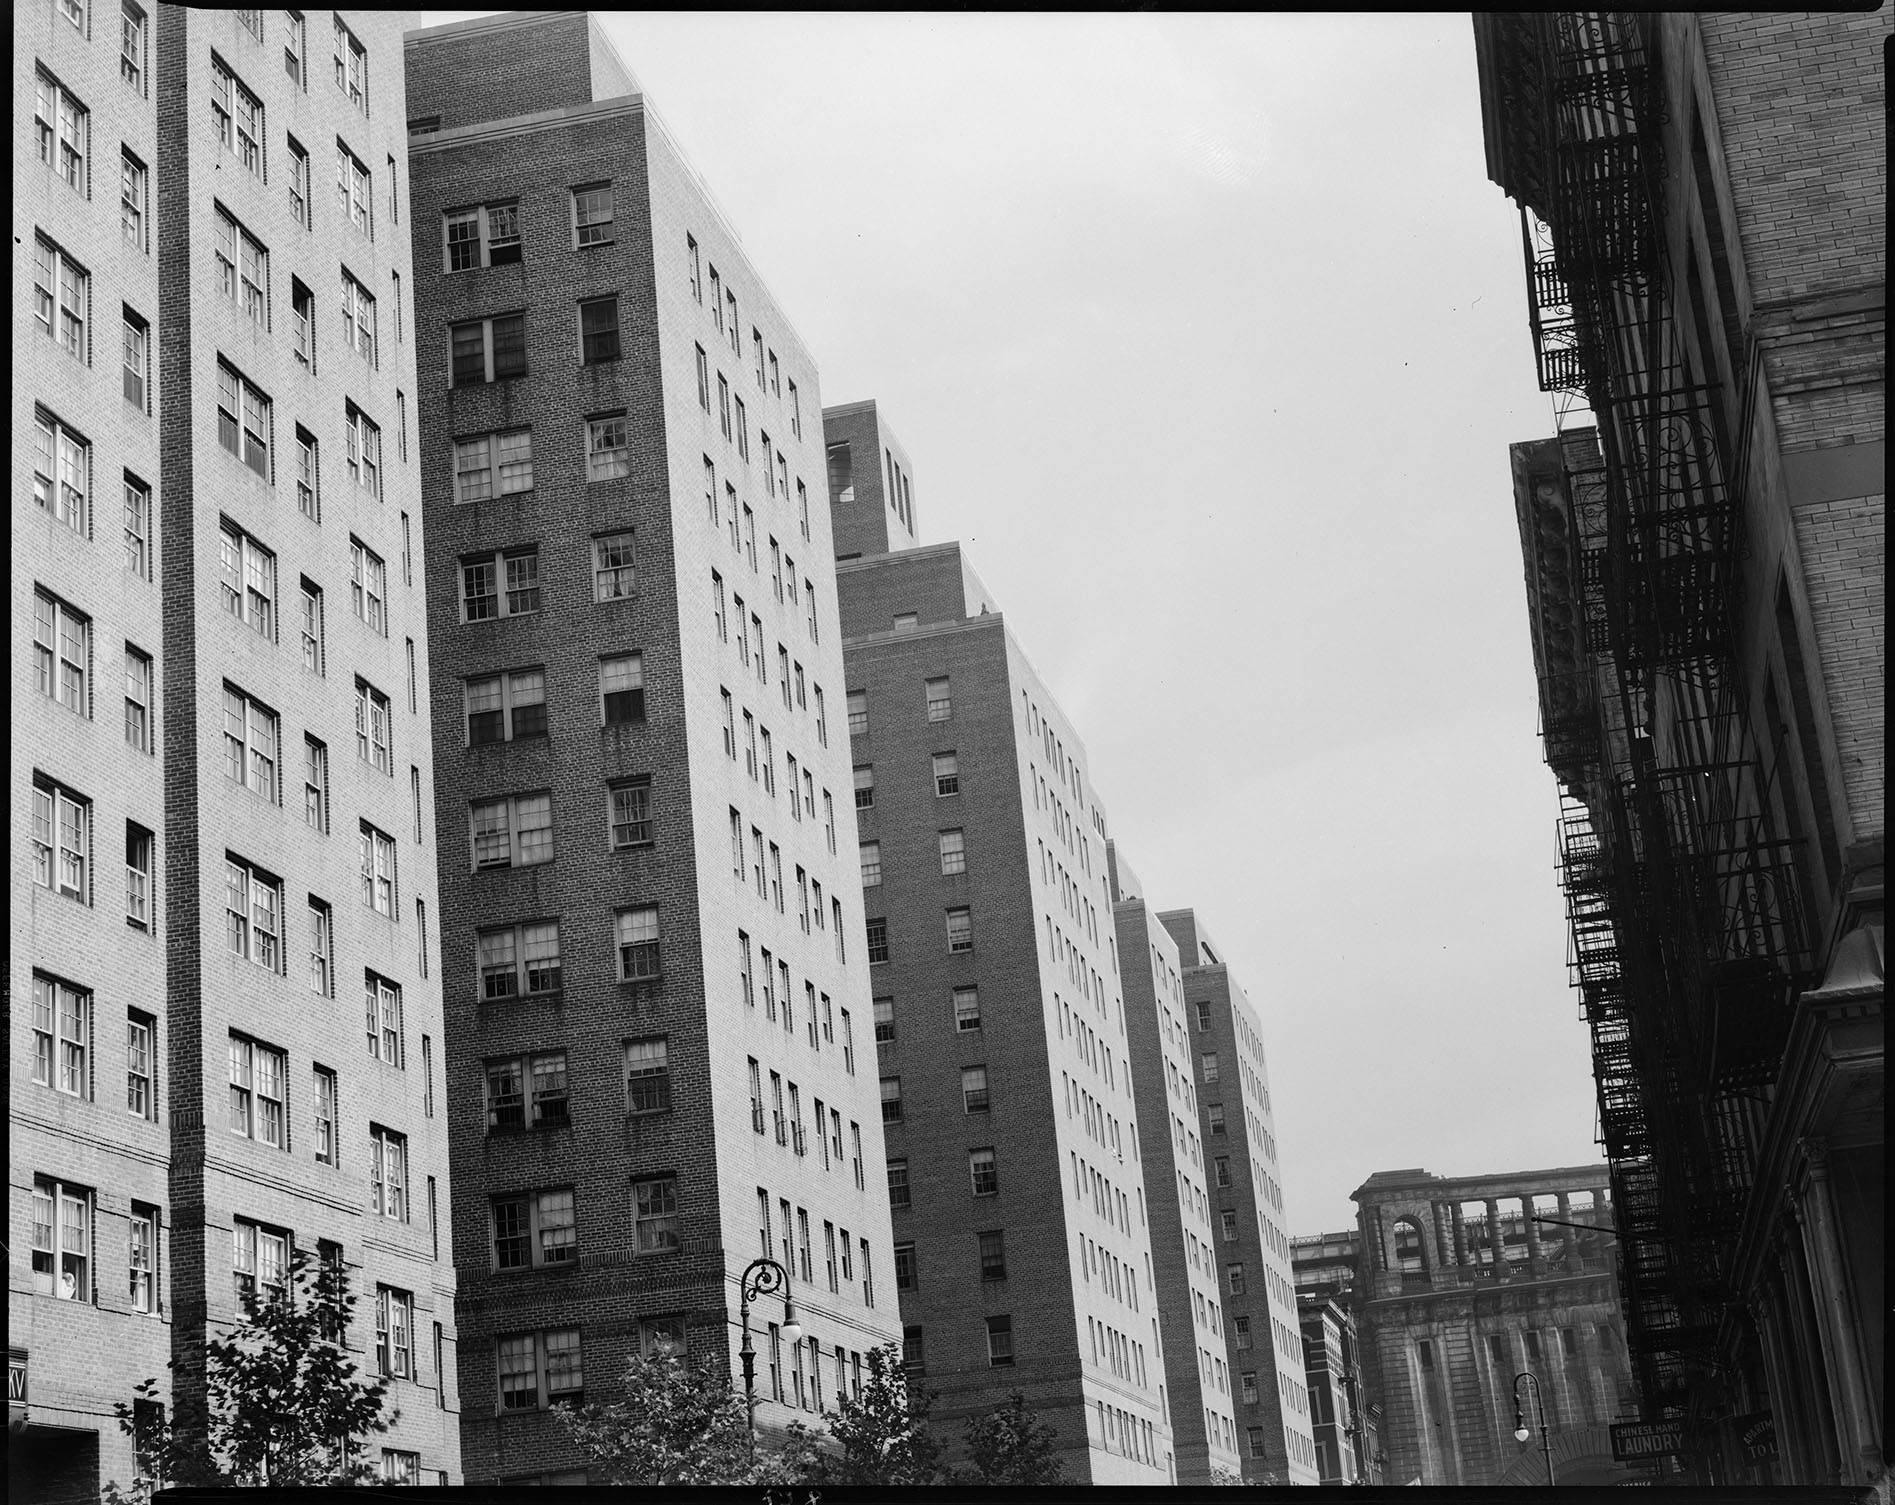 Knickerbocker Village, Catherine and Monroe Streets, 1937. WPA Federal Writers' Project Collection, Neg. 529. NYC Municipal Archives.